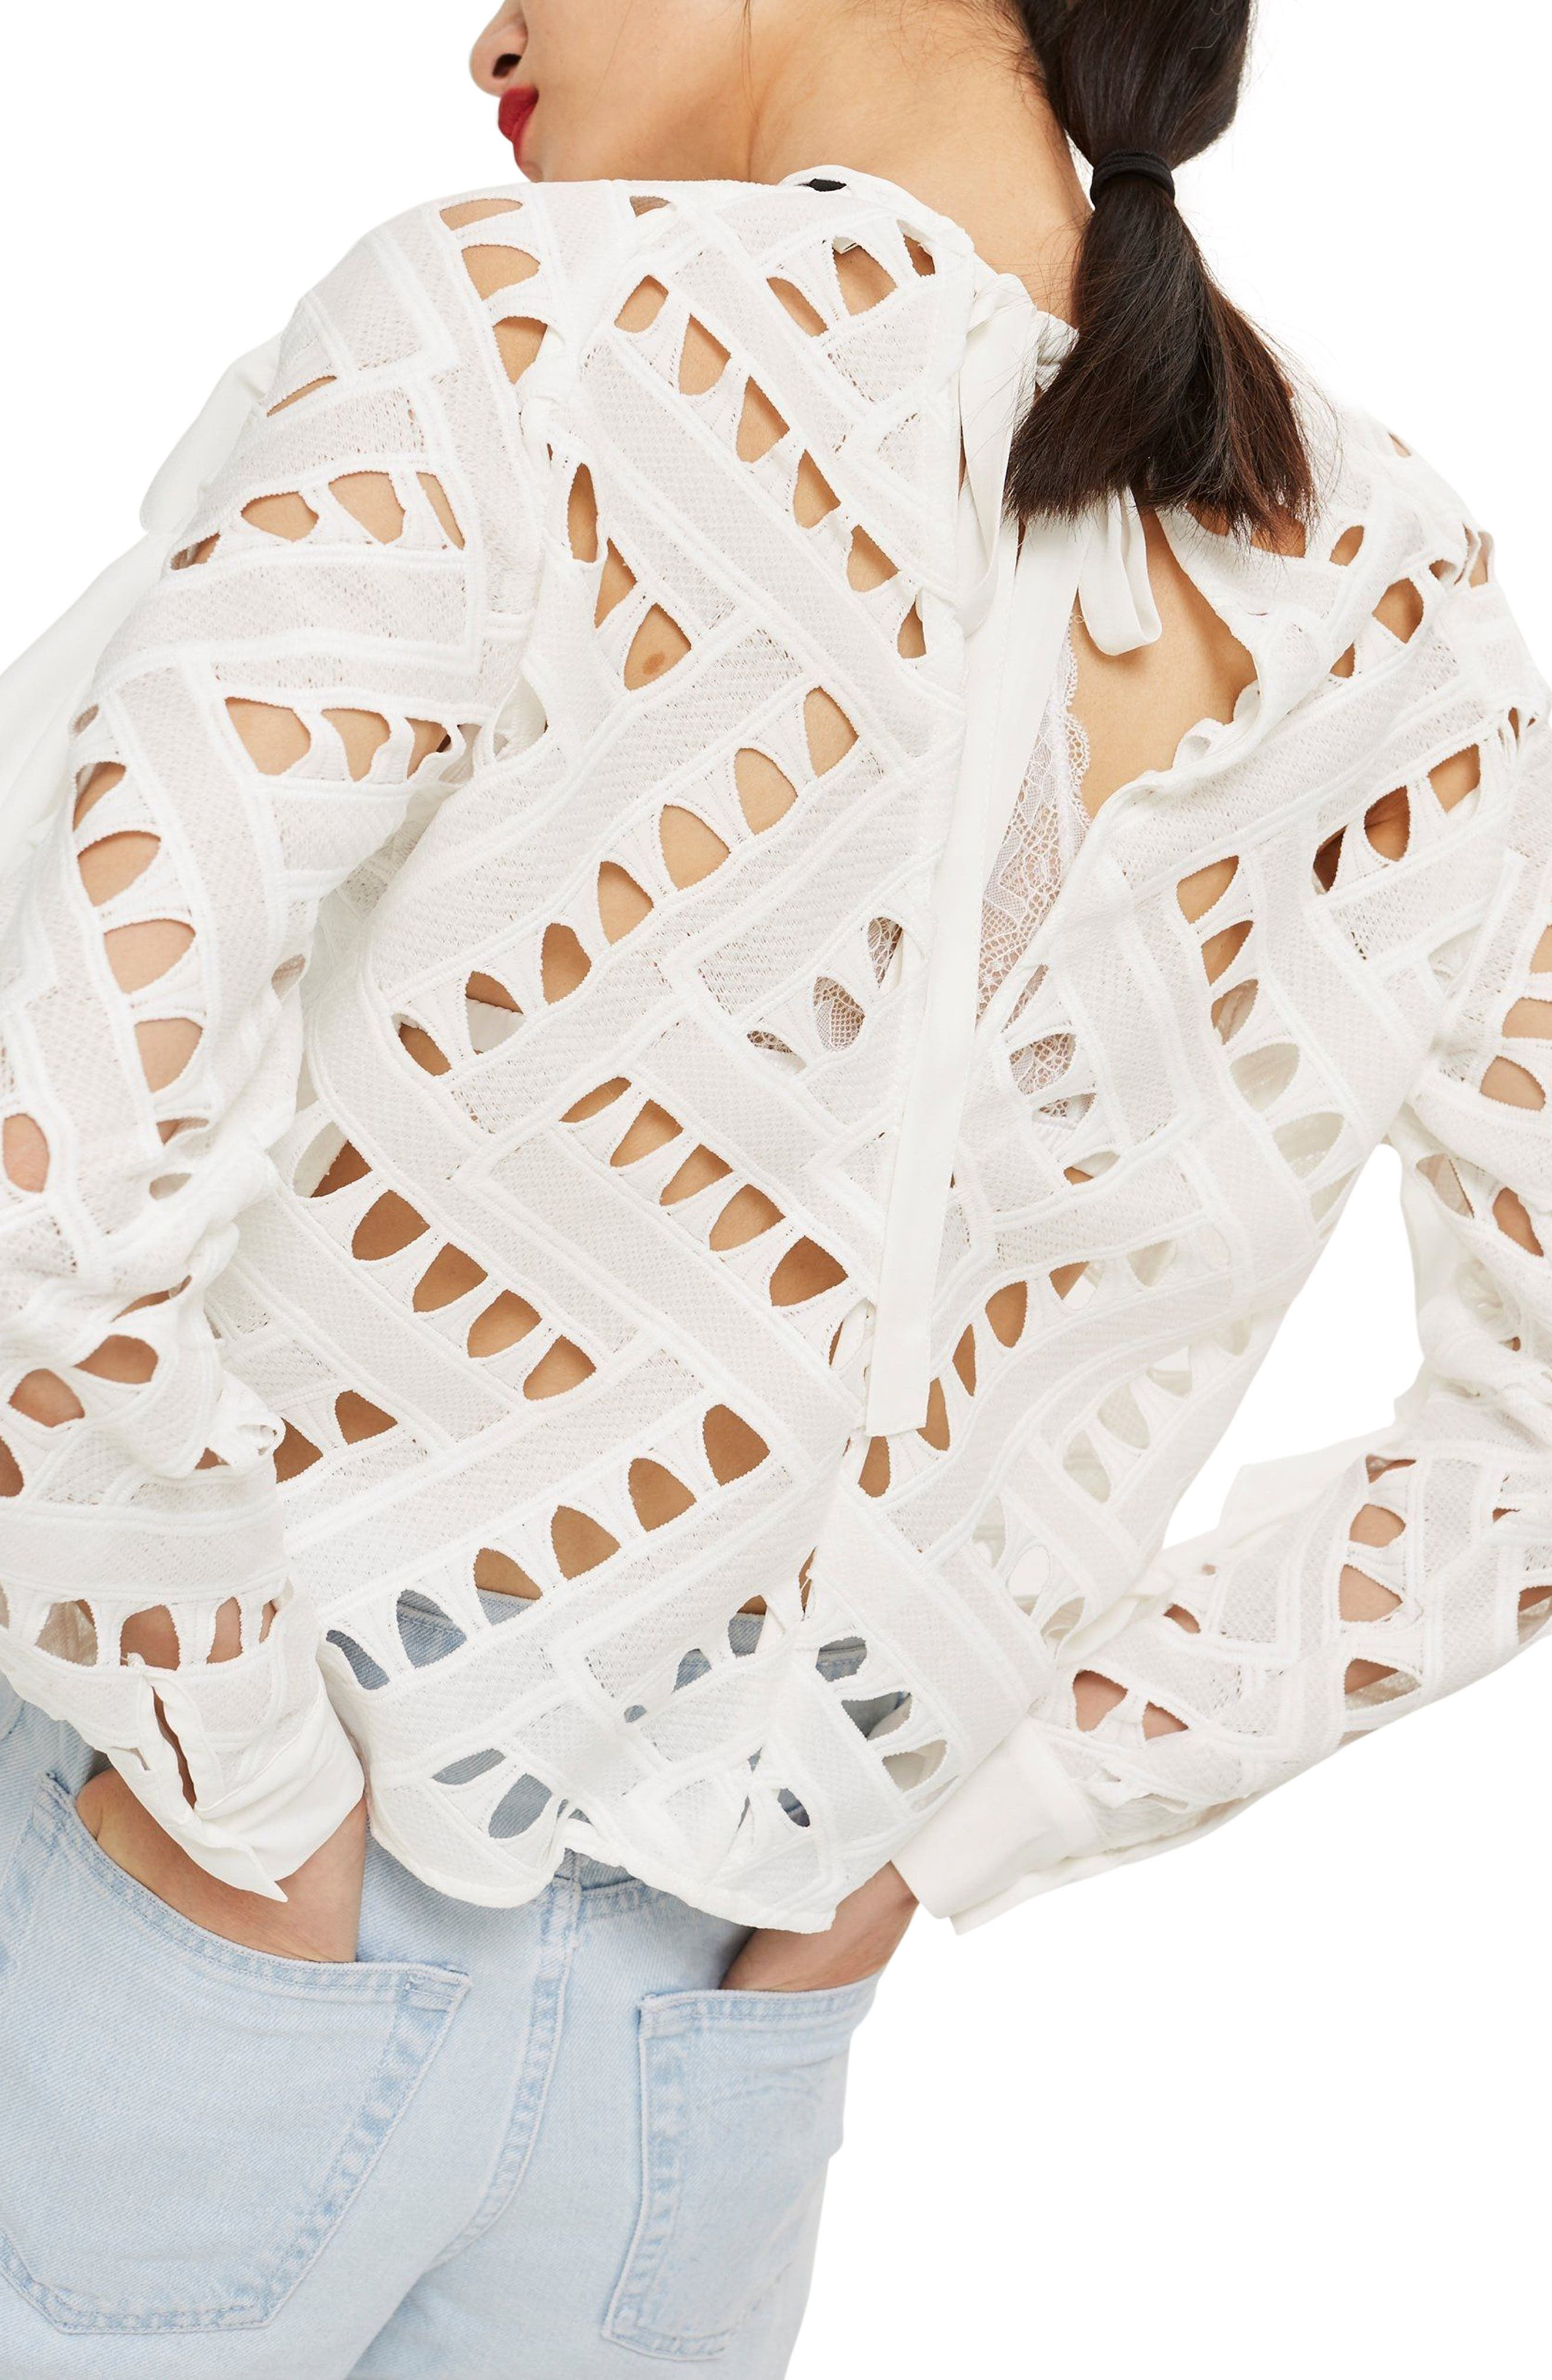 Zigzag Lace Top,                             Alternate thumbnail 3, color,                             Ivory